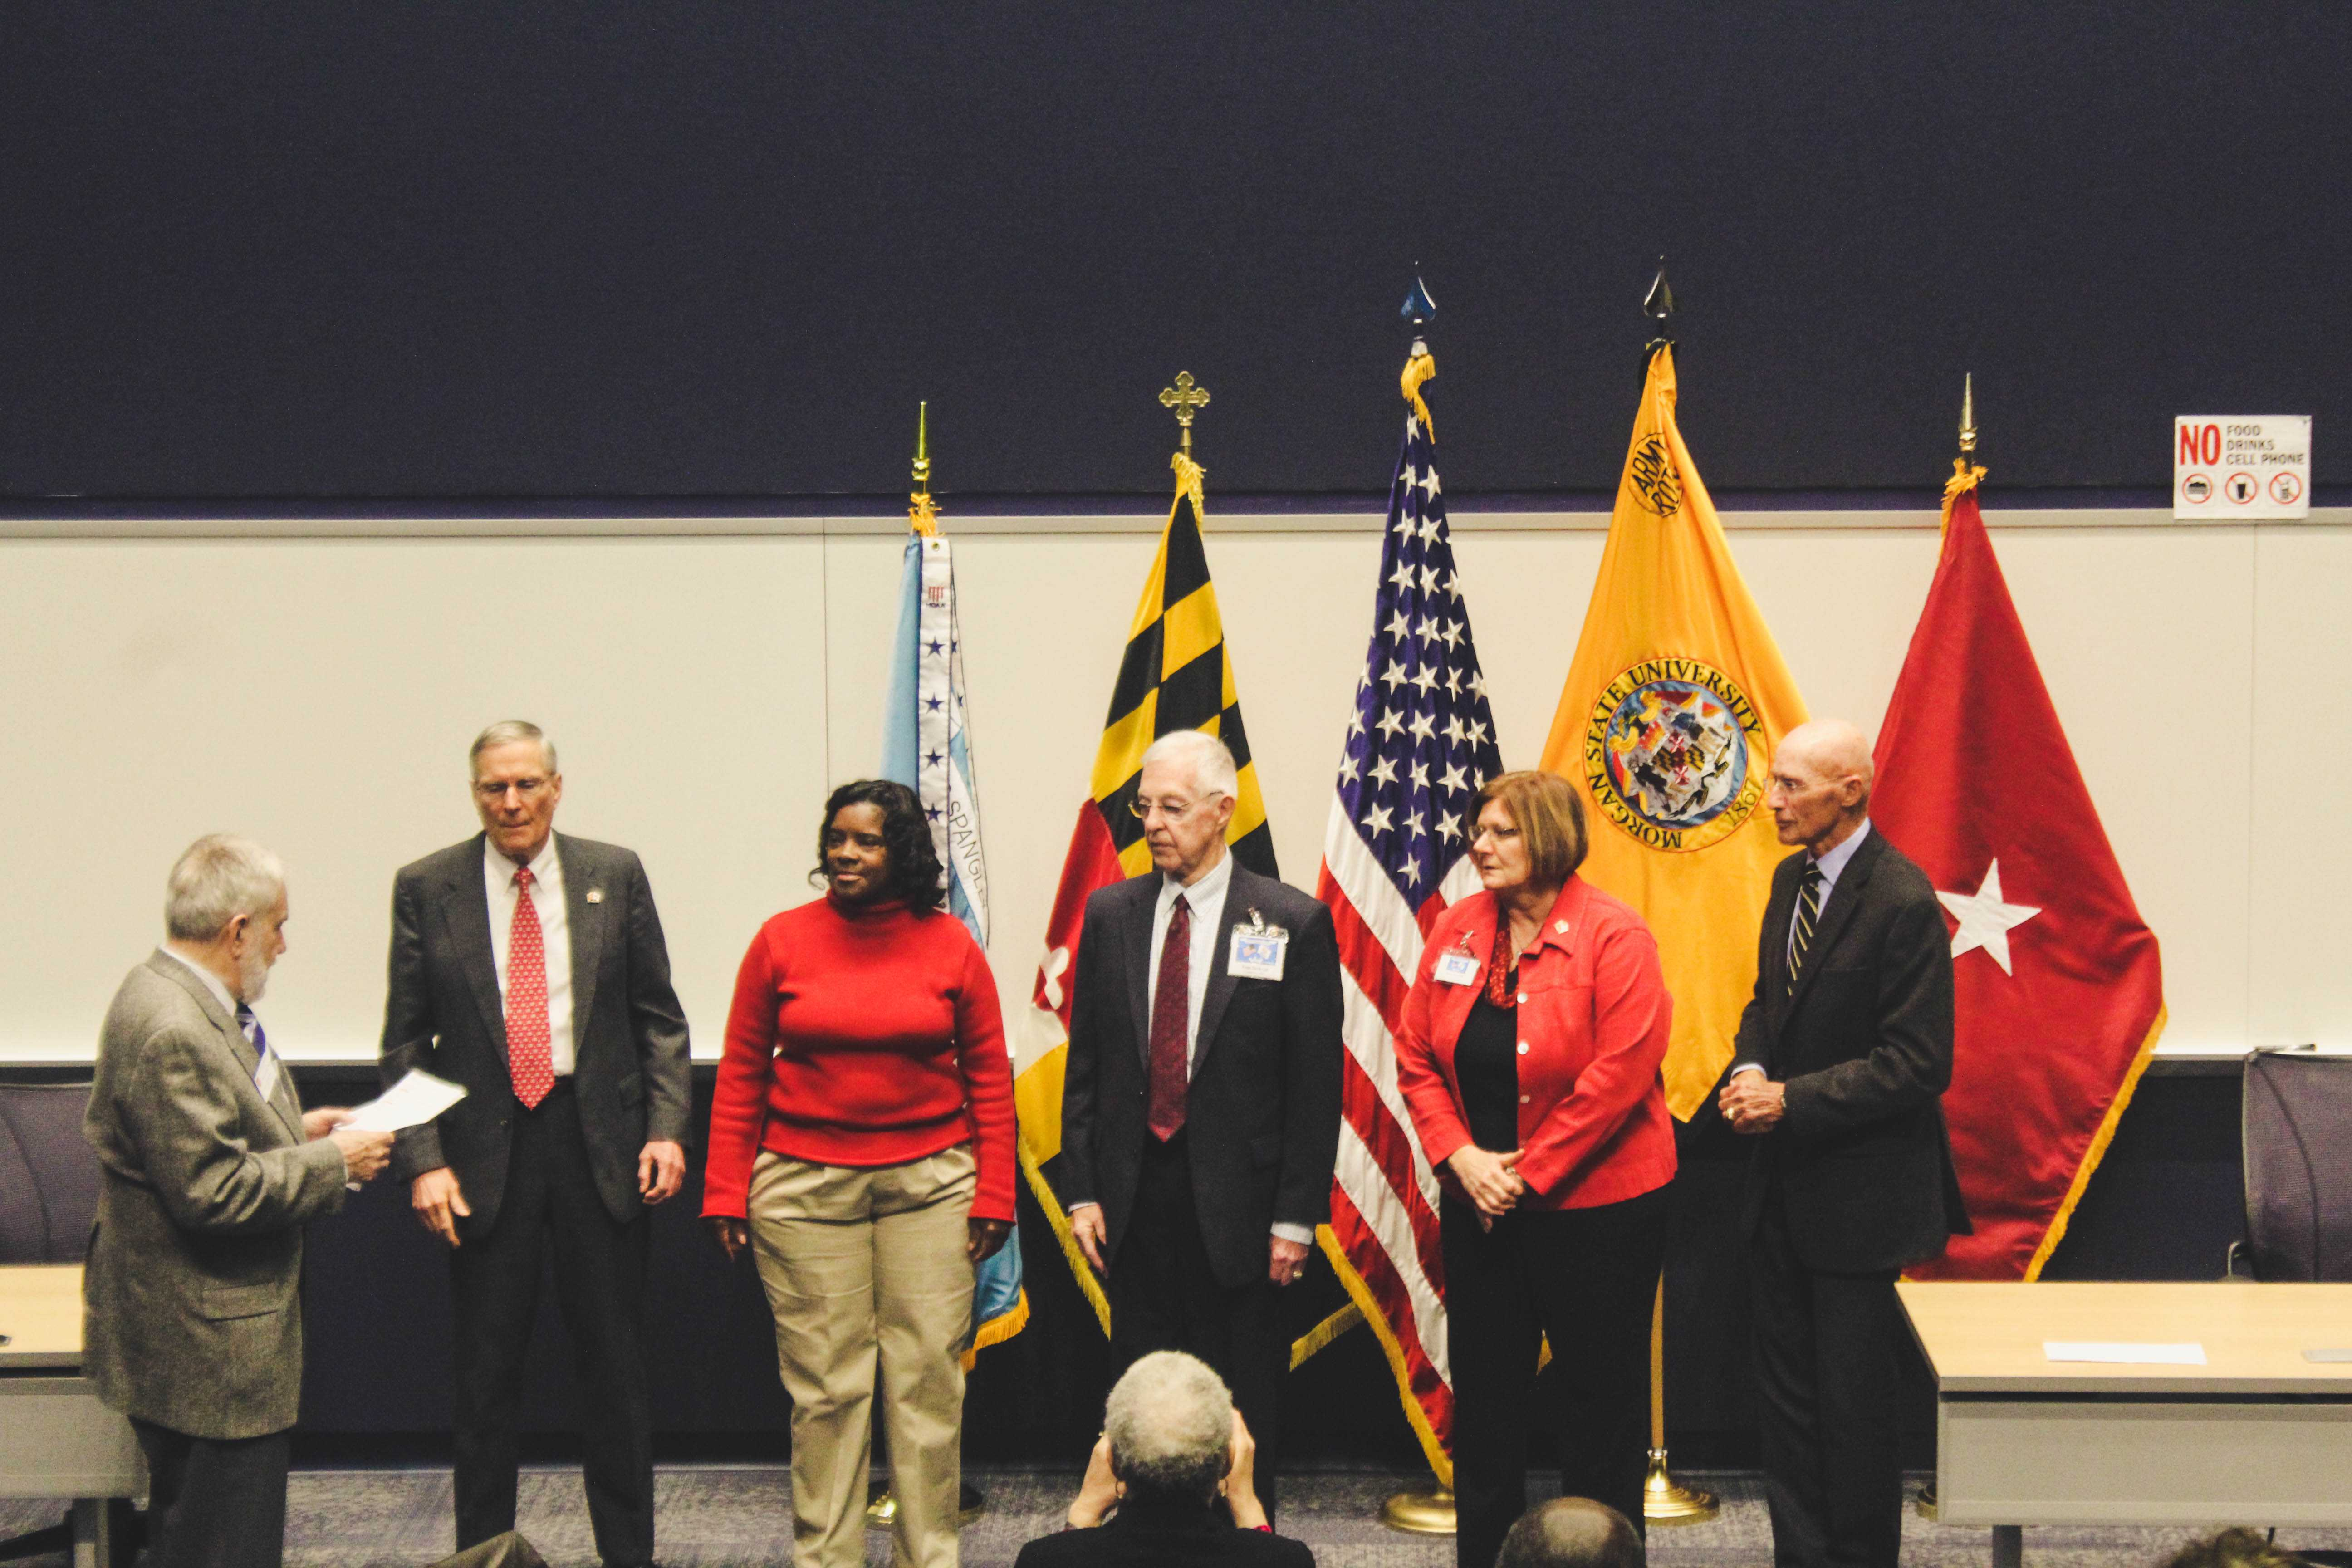 New members of the Military Officer Association of America take their oath of membership. Photo by Maliik Obee.